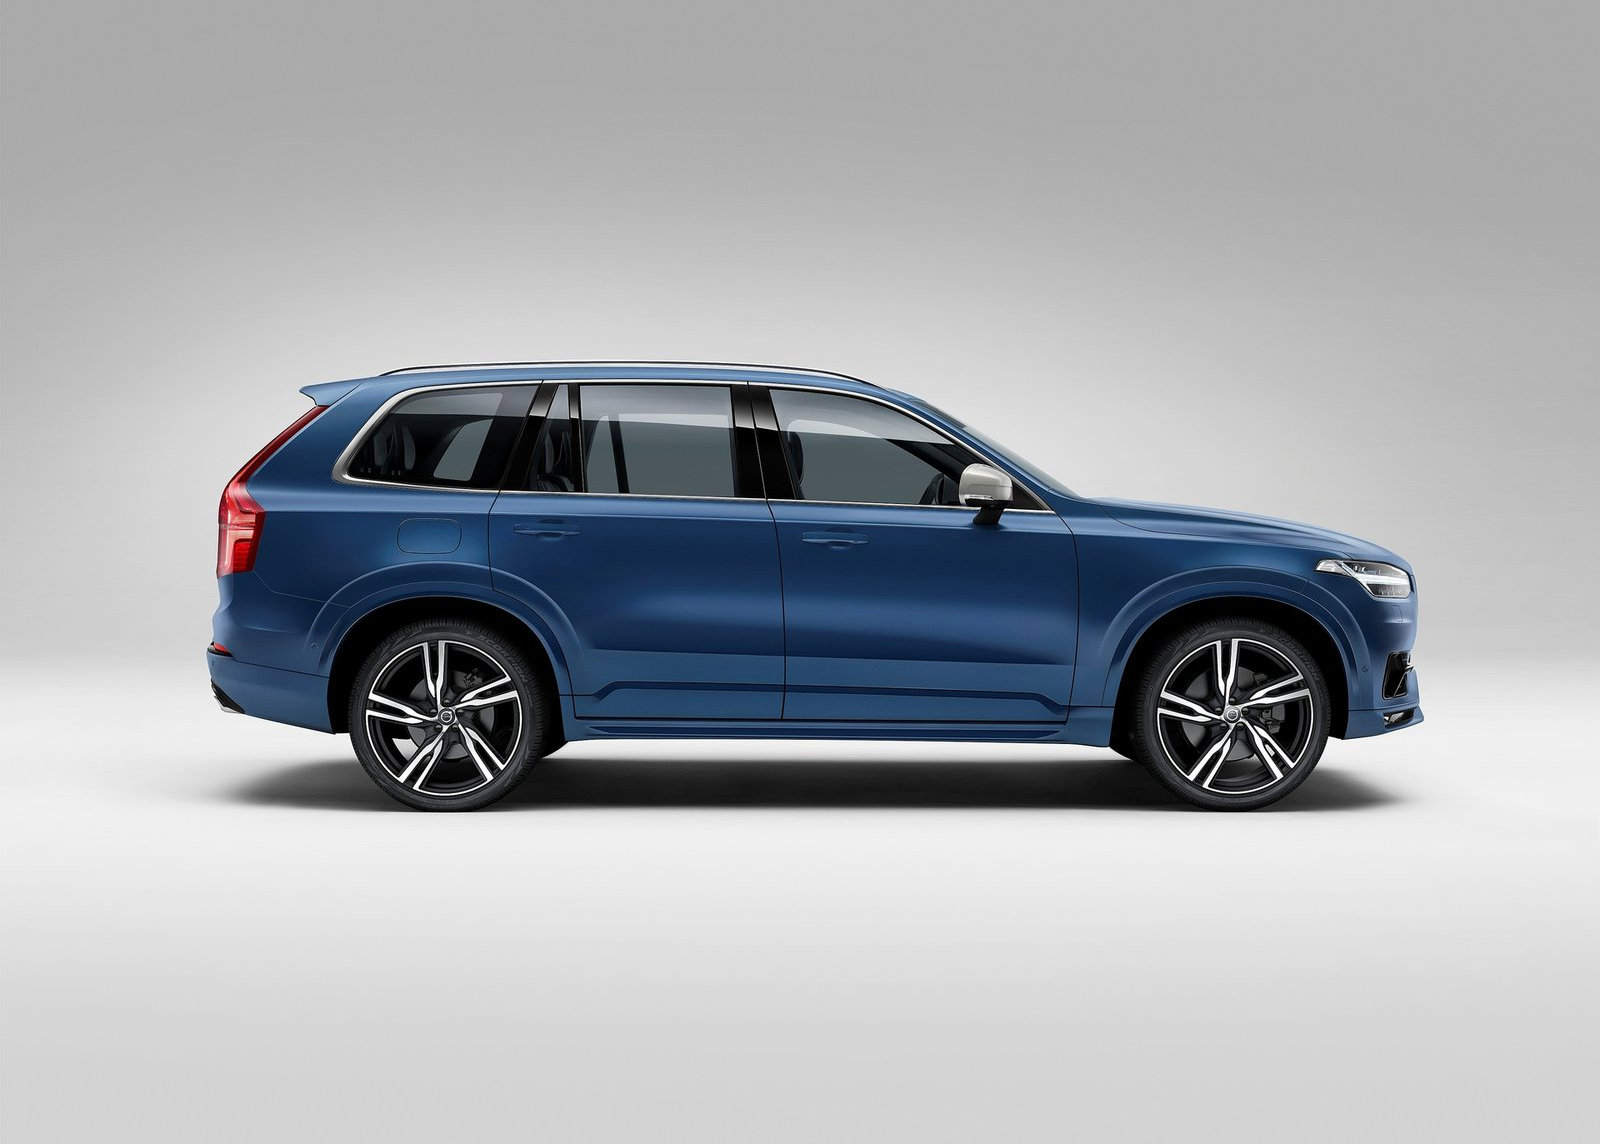 2015 volvo xc90 price list for europe announced it starts from 59 472 autoevolution. Black Bedroom Furniture Sets. Home Design Ideas